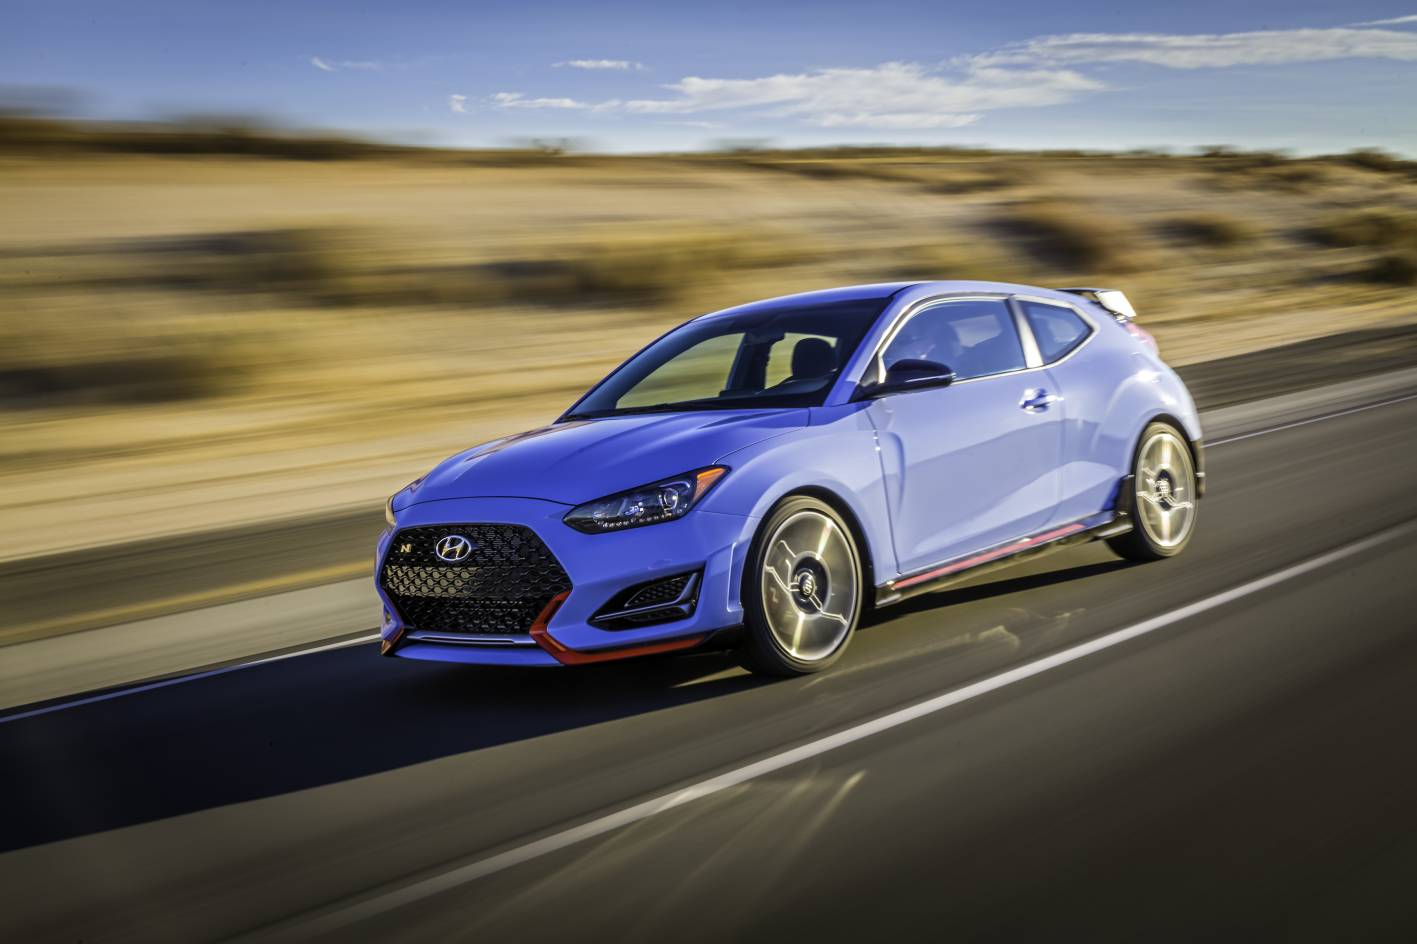 2018 hyundai veloster n technical overview. Black Bedroom Furniture Sets. Home Design Ideas